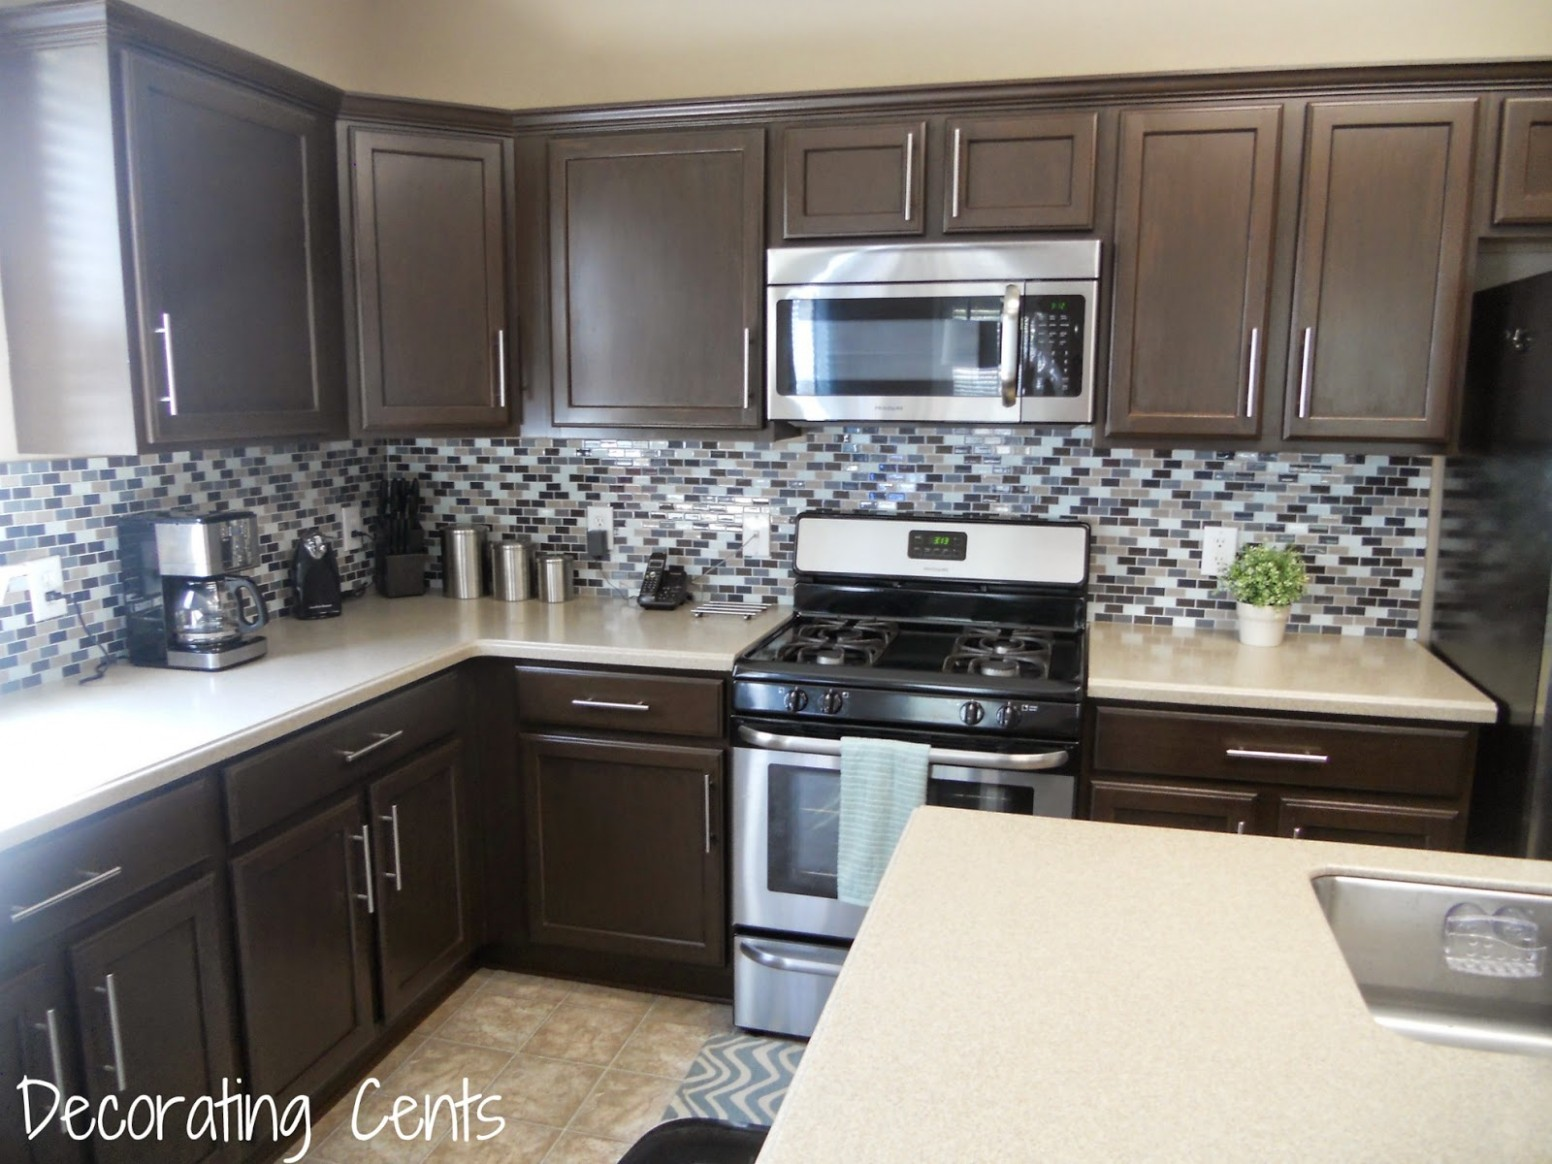 Remodelaholic  DIY Refinished and Painted Cabinet Reviews - Rustoleum Kitchen Cabinet Paint Kit Reviews